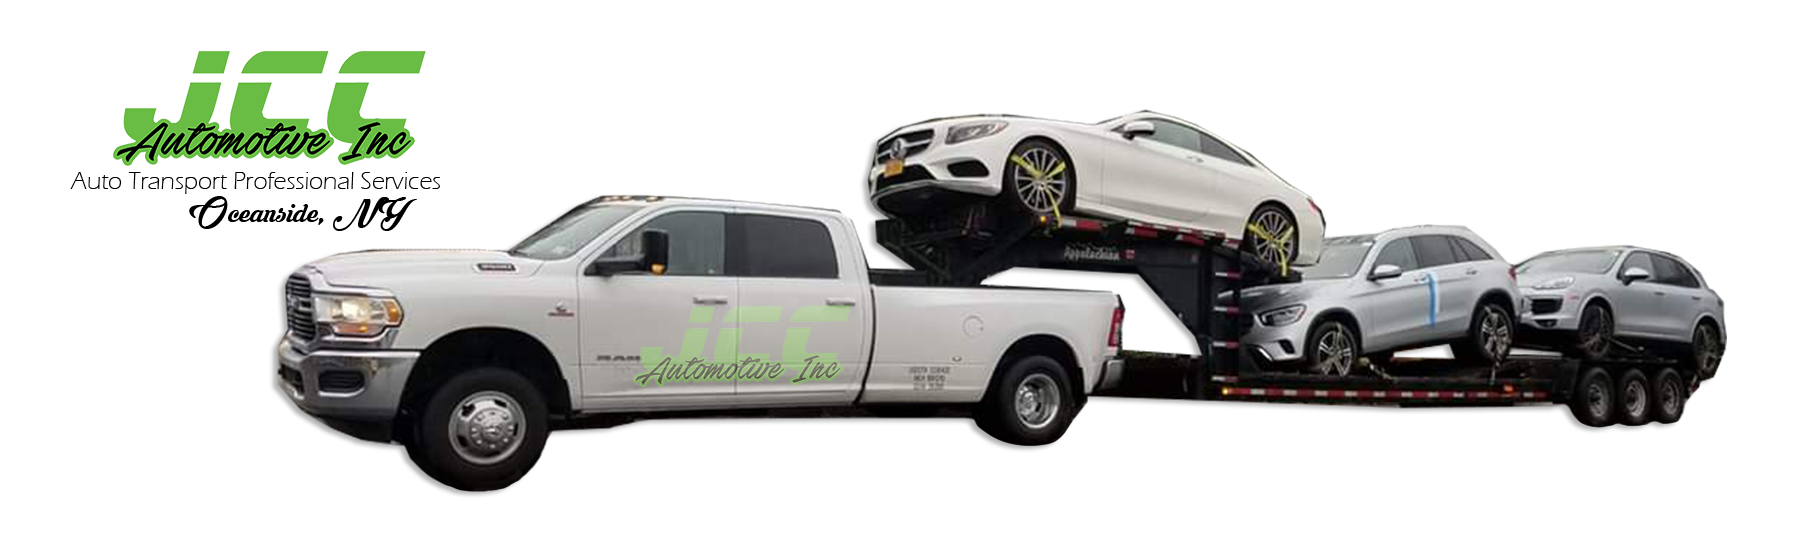 JCC Automotive Inc. | Dealership Car Transport Professional Services, 3 New Street, Oceanside, Long Island, NY, 11572 | PHONE: 516-287-4189, FAX: 516-599-8206